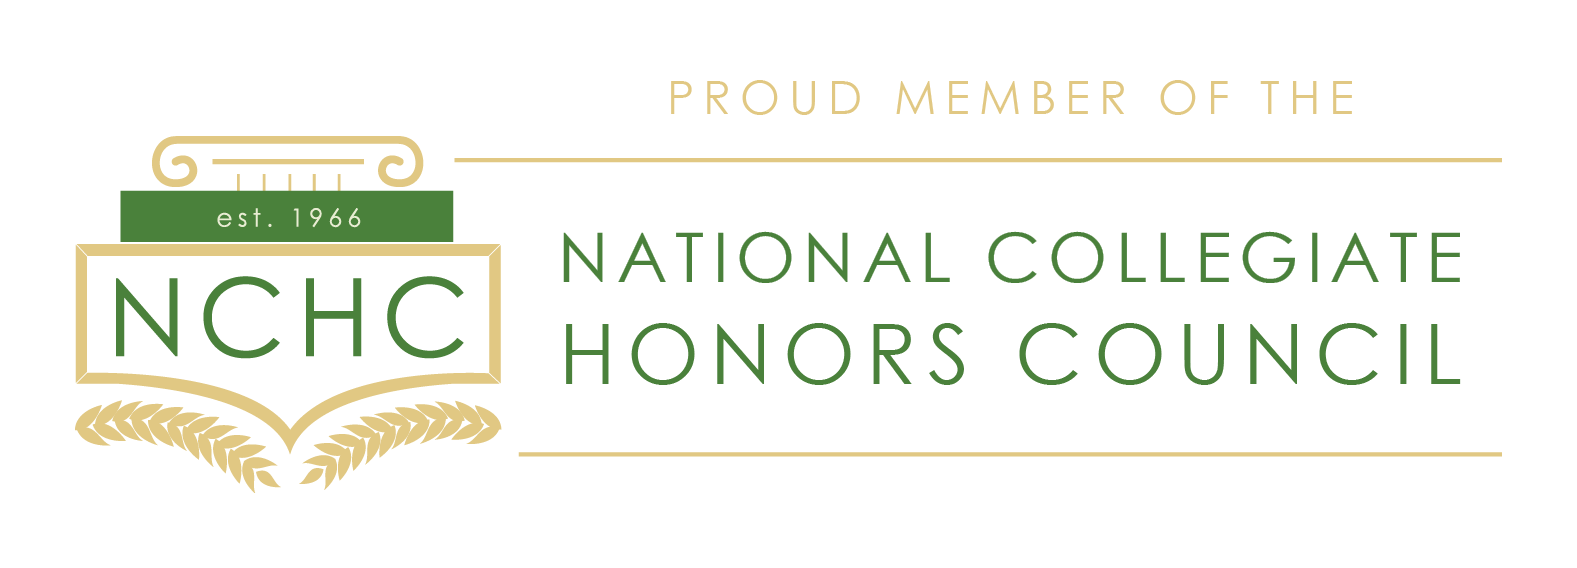 national collegiate honors council logo